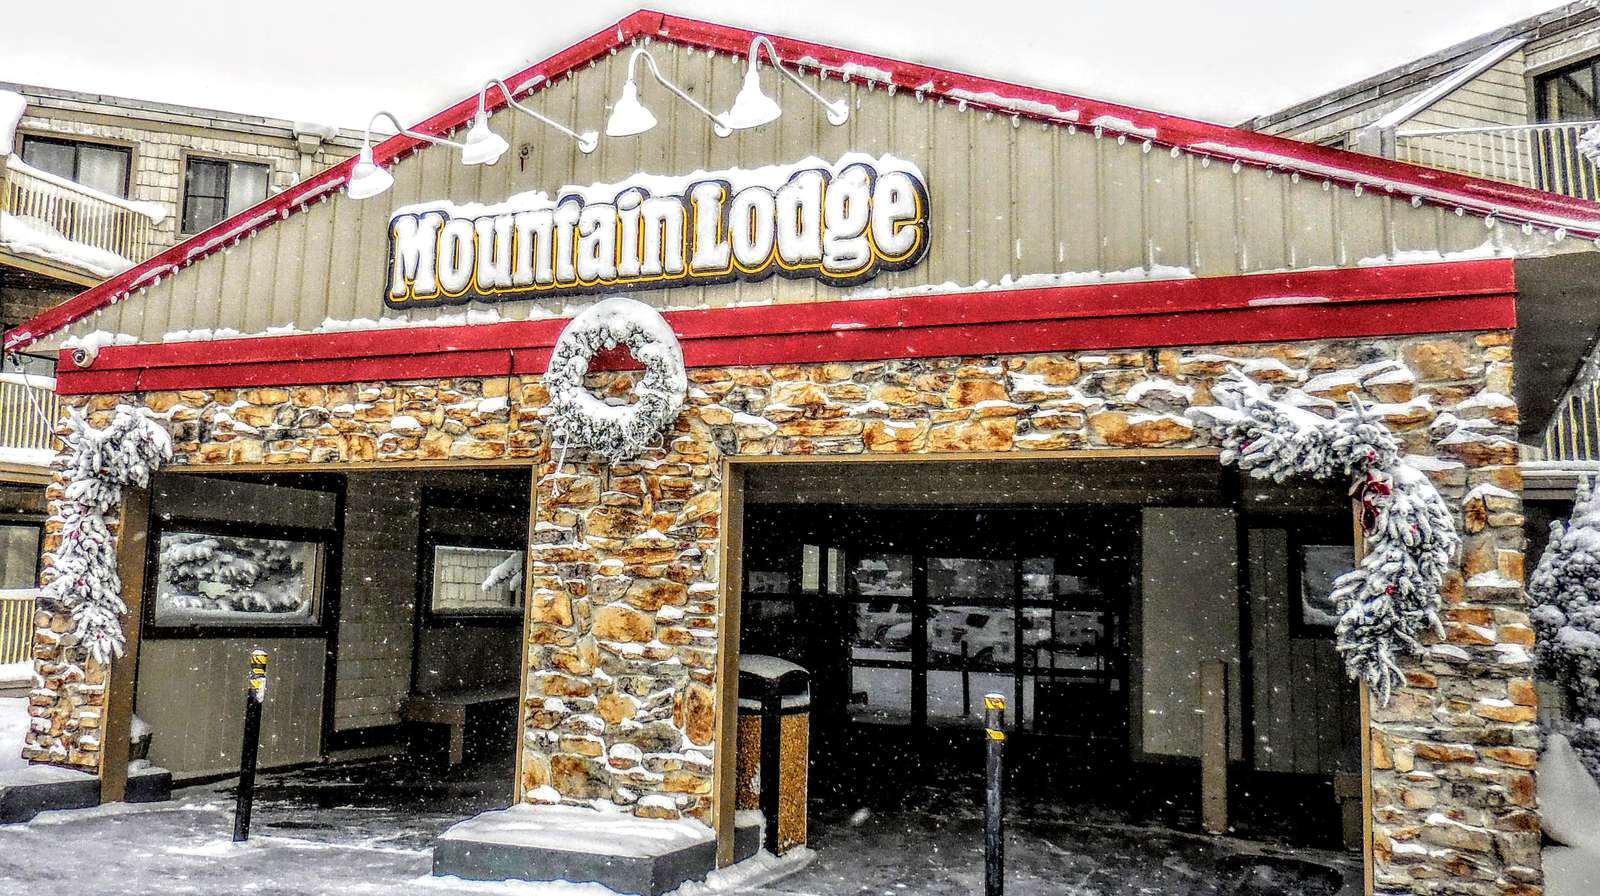 ML228 is located in Mountain Lodge - arguably the VERY BEST LOCATION on the entire mountain!!